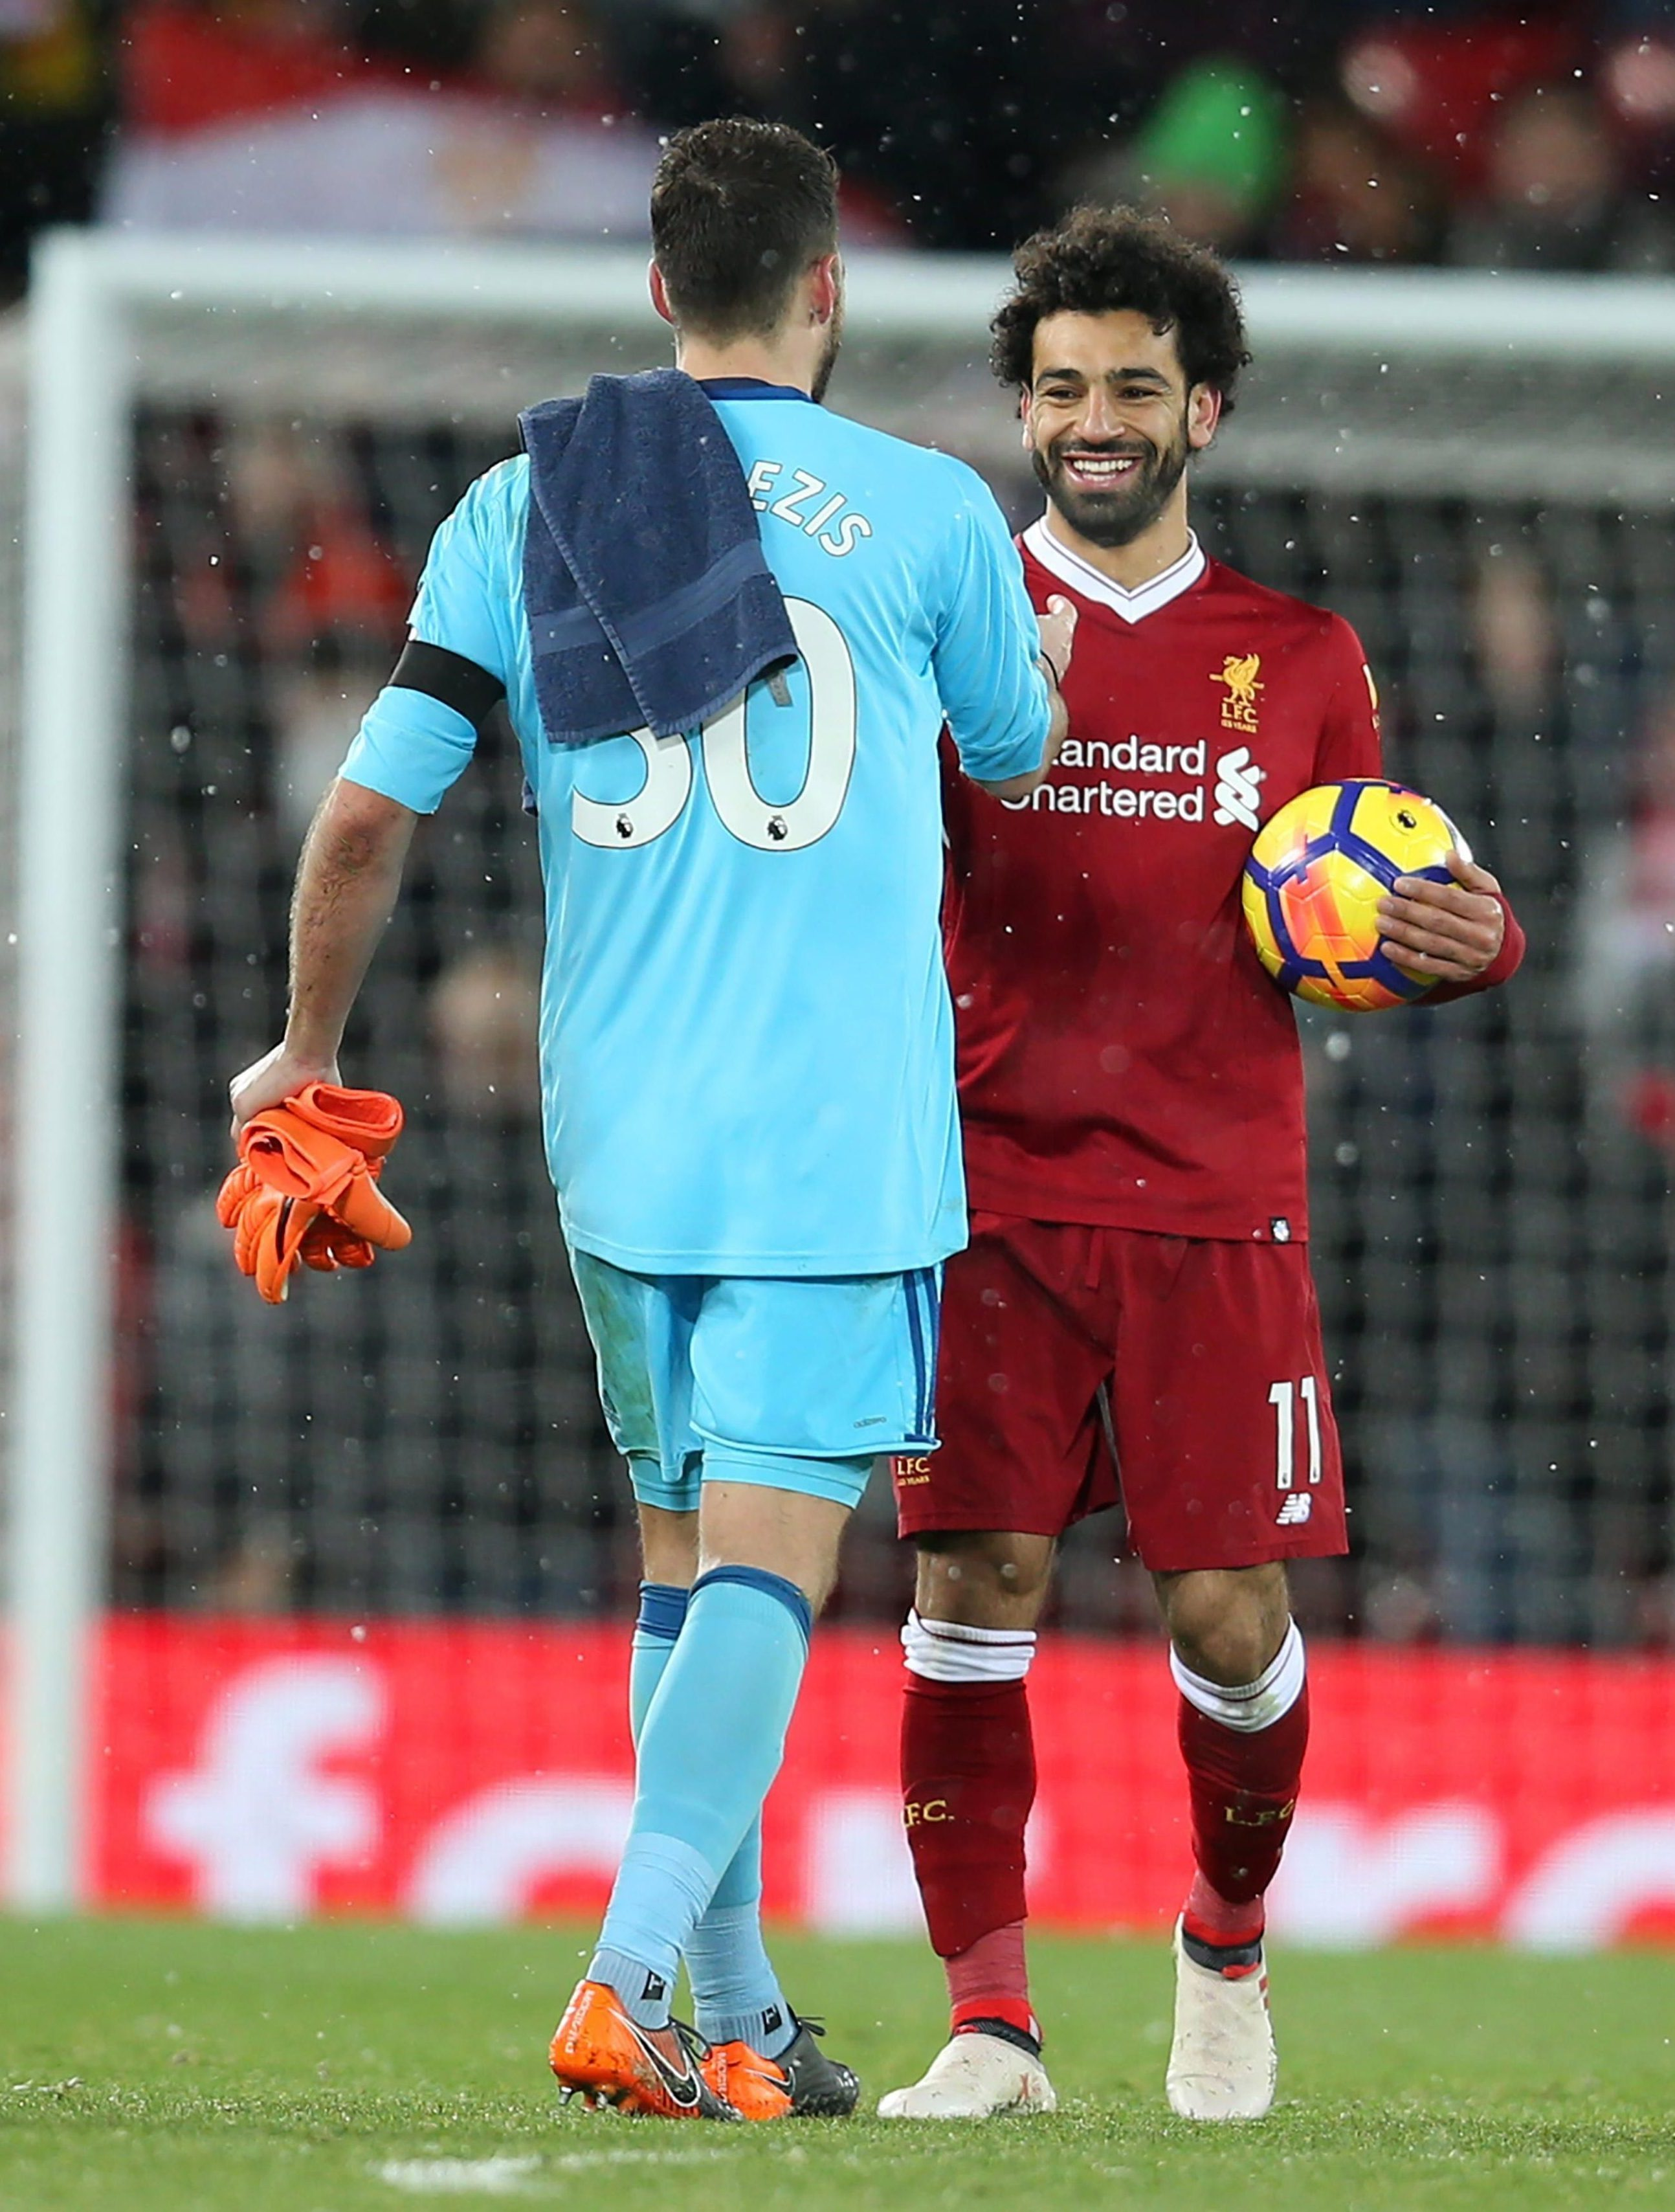 Mo Salah apologies to Orestis Karnezis after scoring four as Liverpool smashed Watford